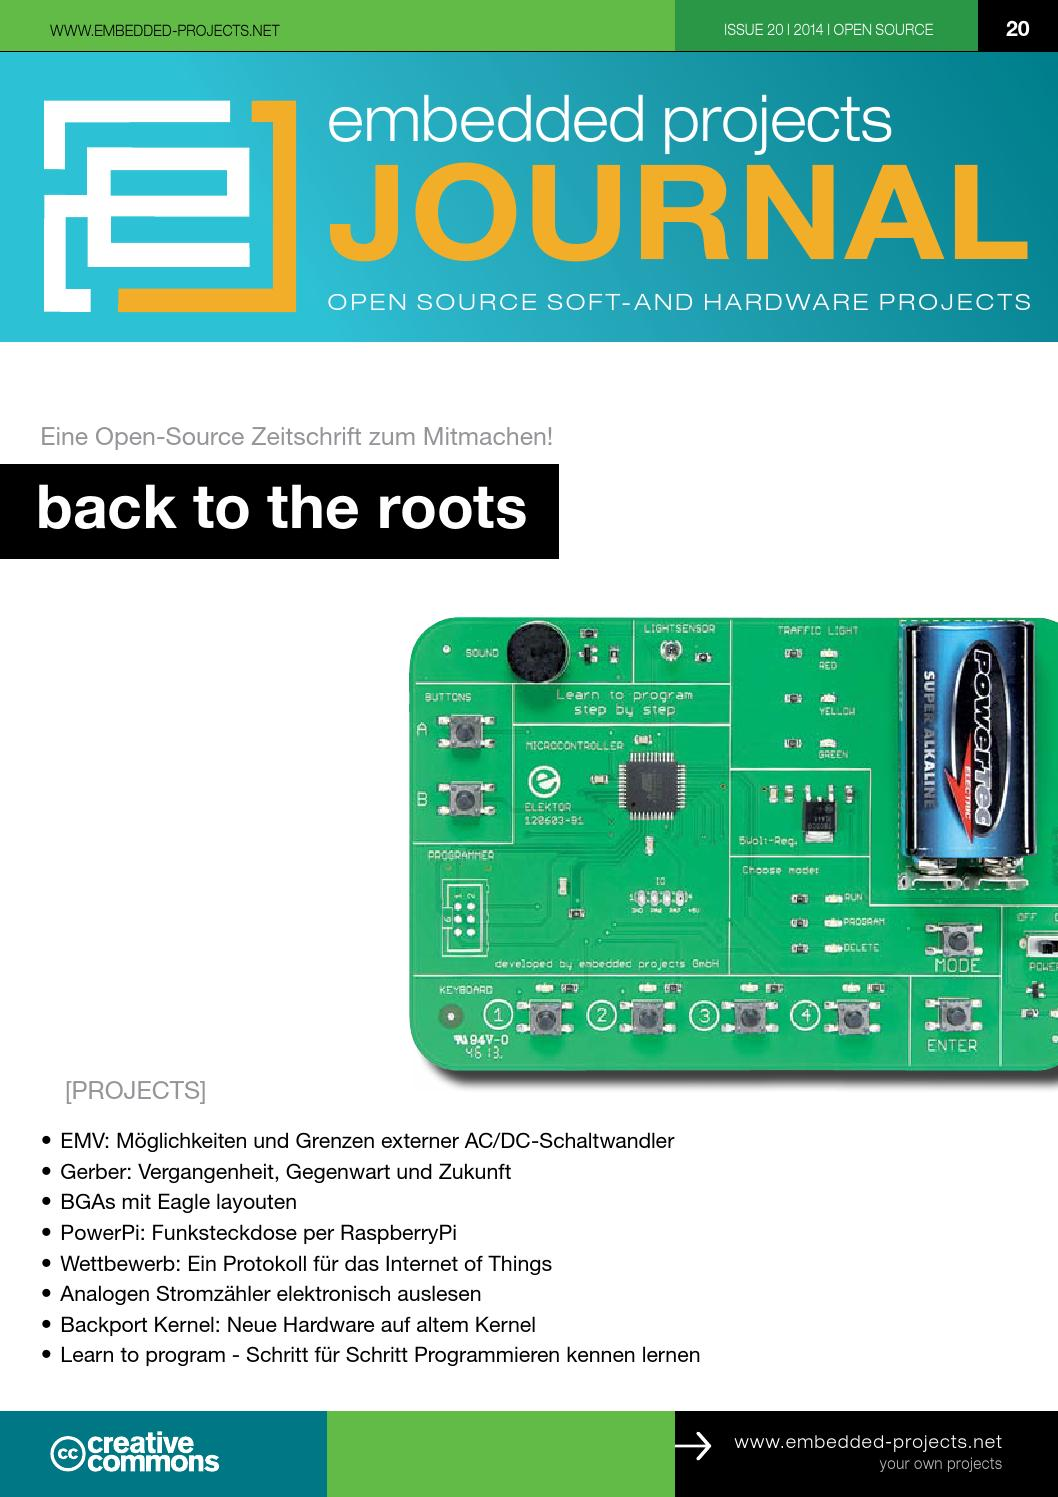 embedded projects Journal Ausgabe 20 by embedded projects GmbH - issuu